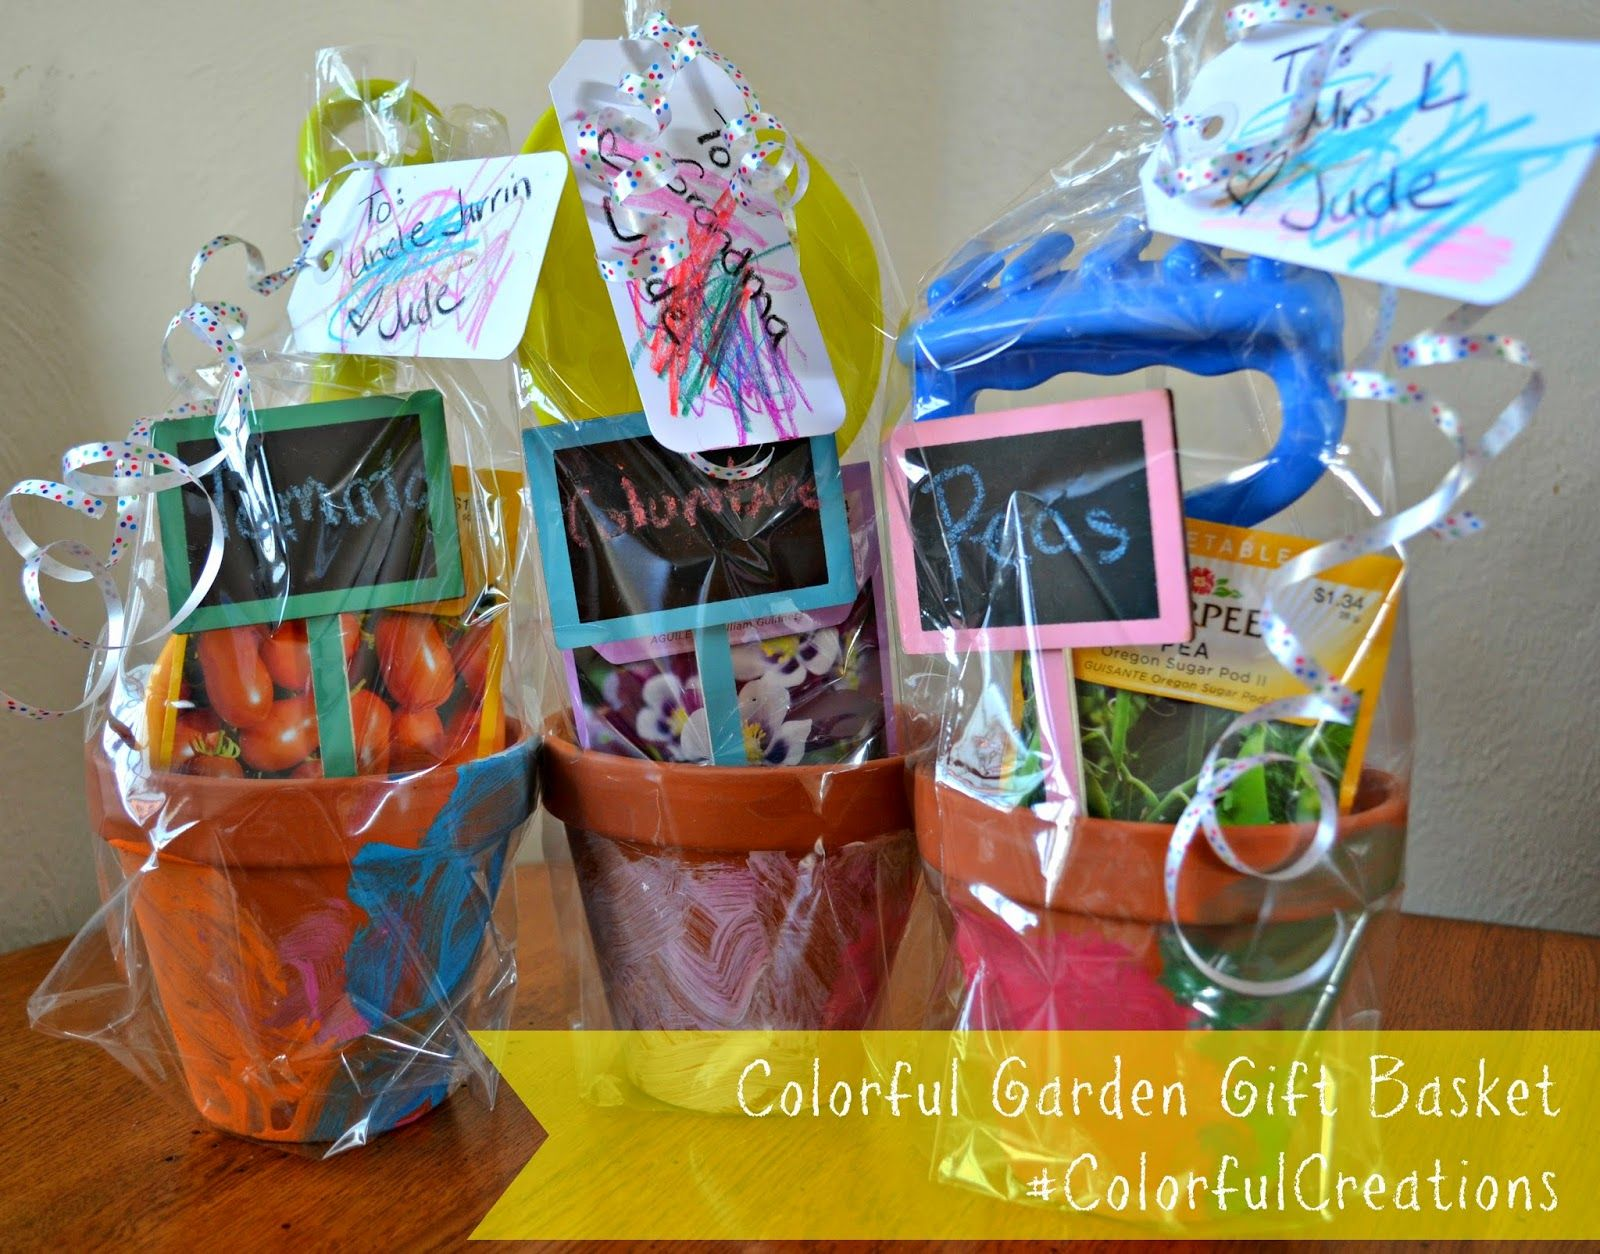 Gardening Gift Basket Ideas trendy design ideas gardening gifts impressive gardening gift baskets perfect for mother39s day Creating A Colorful Garden Gift Basket Using Crayola Crayons And Sidewalk Chalk Mothers Day Gift Ideas